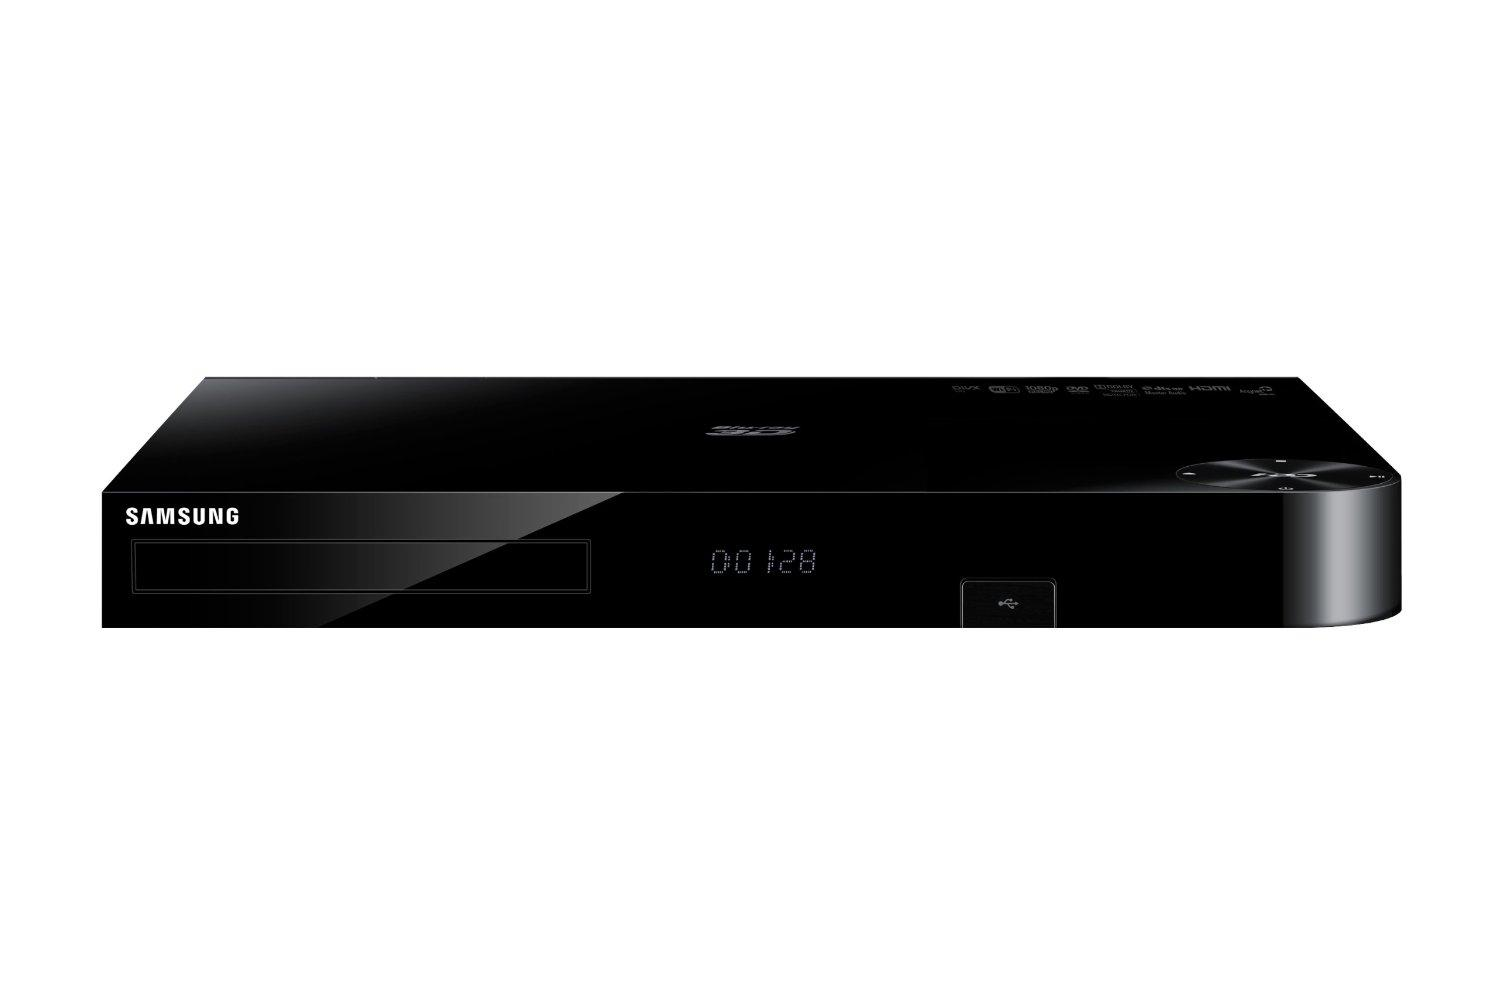 samsung bd h8900 hd recorder mit twin tuner und 3d blu ray. Black Bedroom Furniture Sets. Home Design Ideas